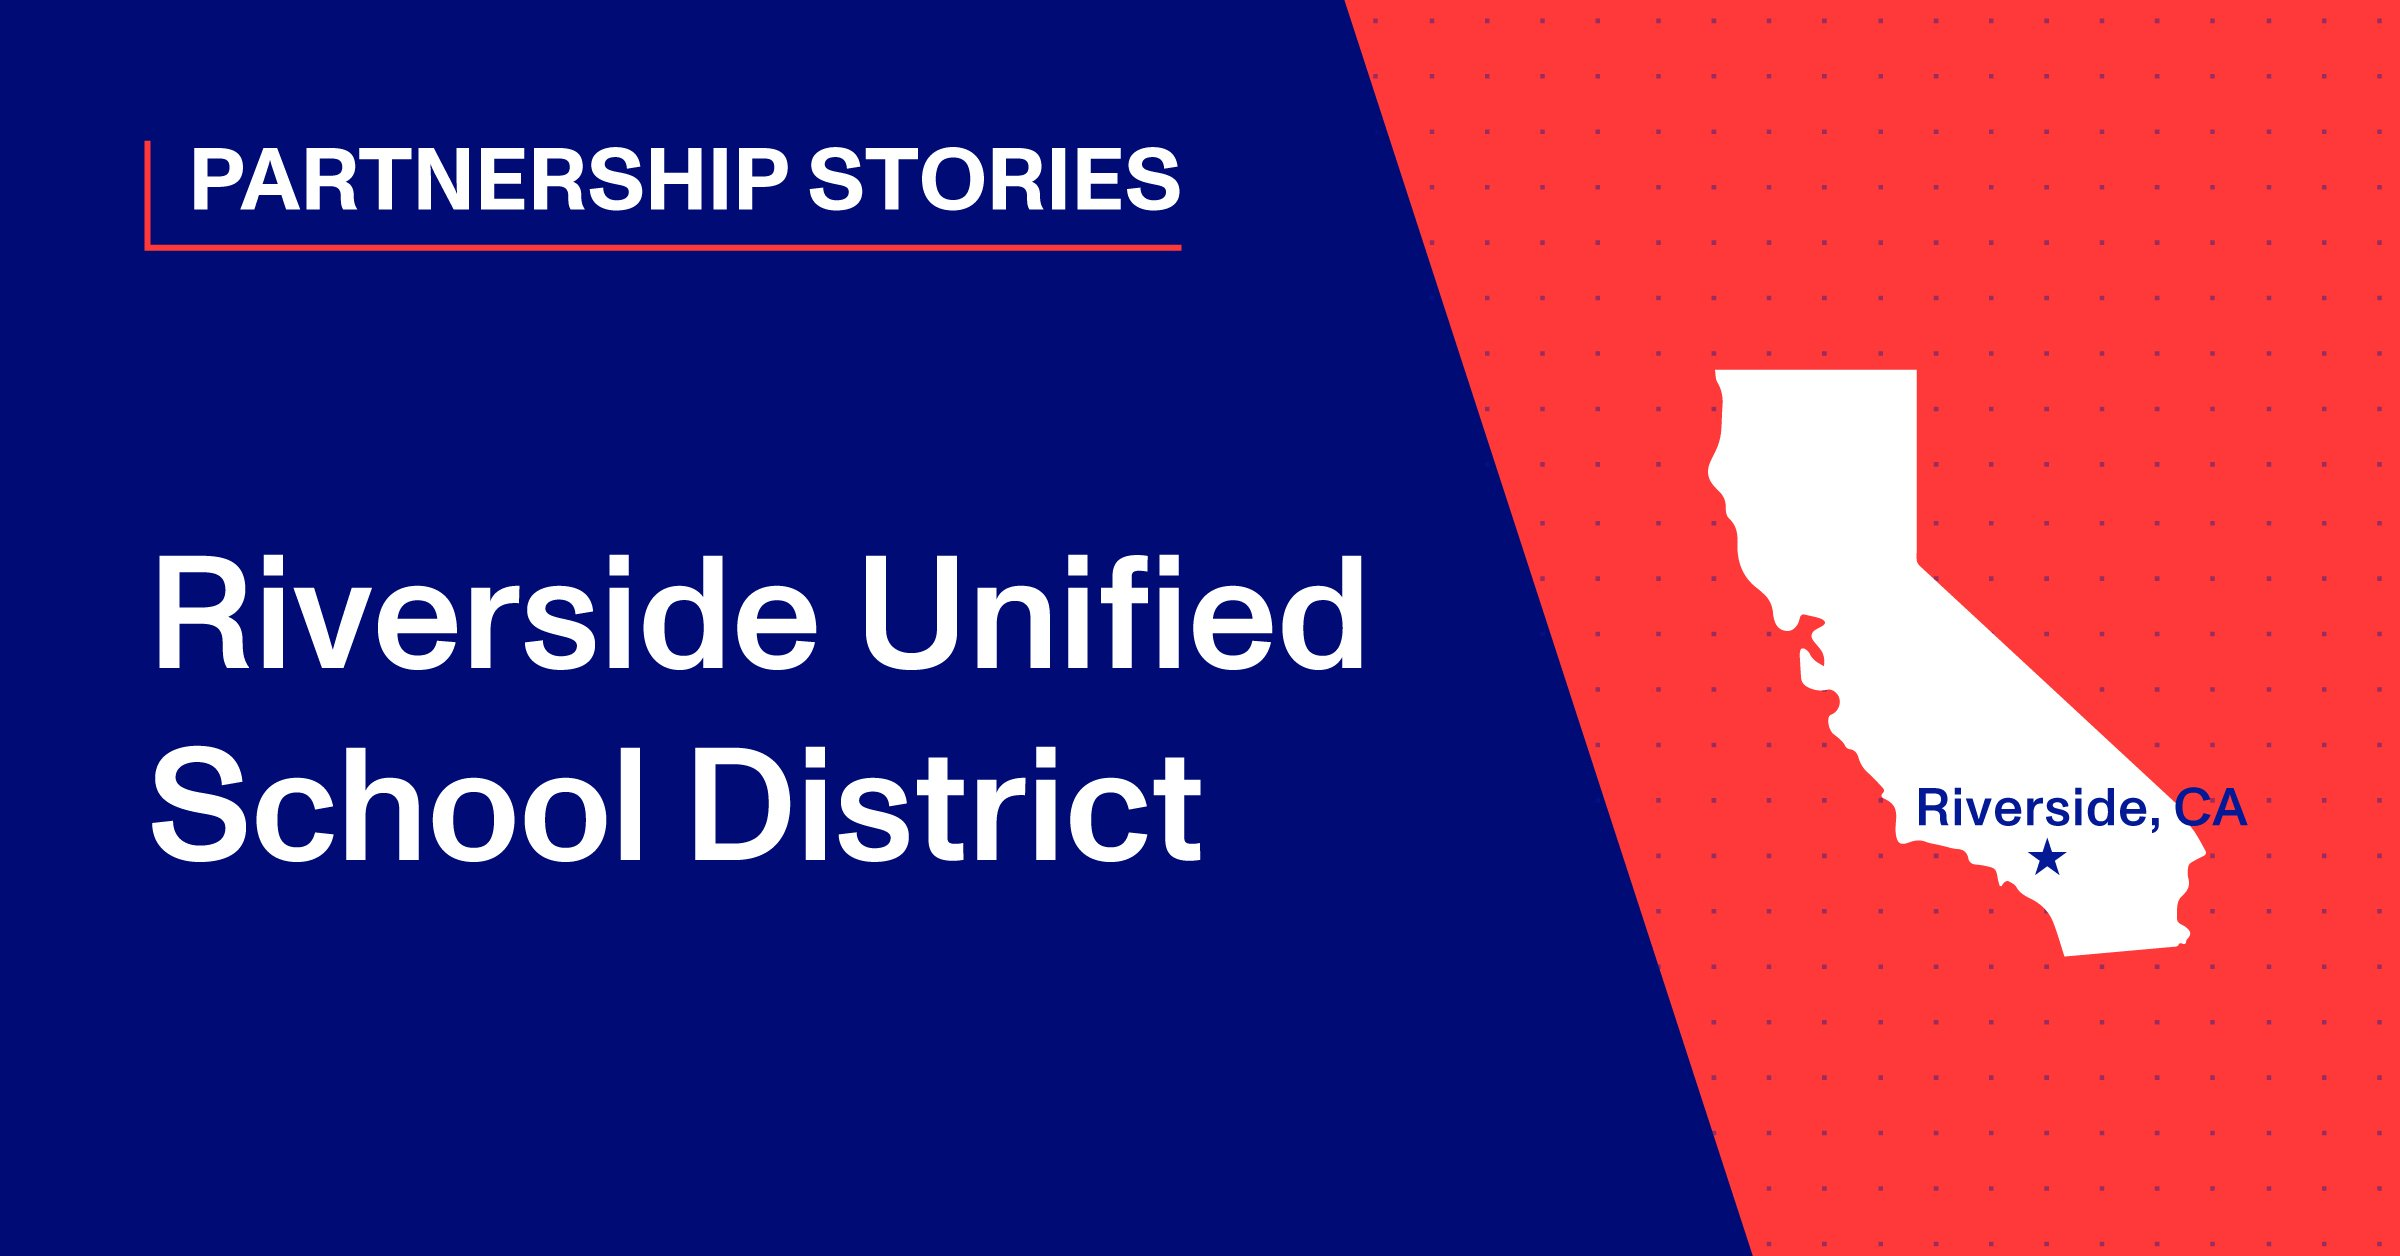 Riverside Unified School District